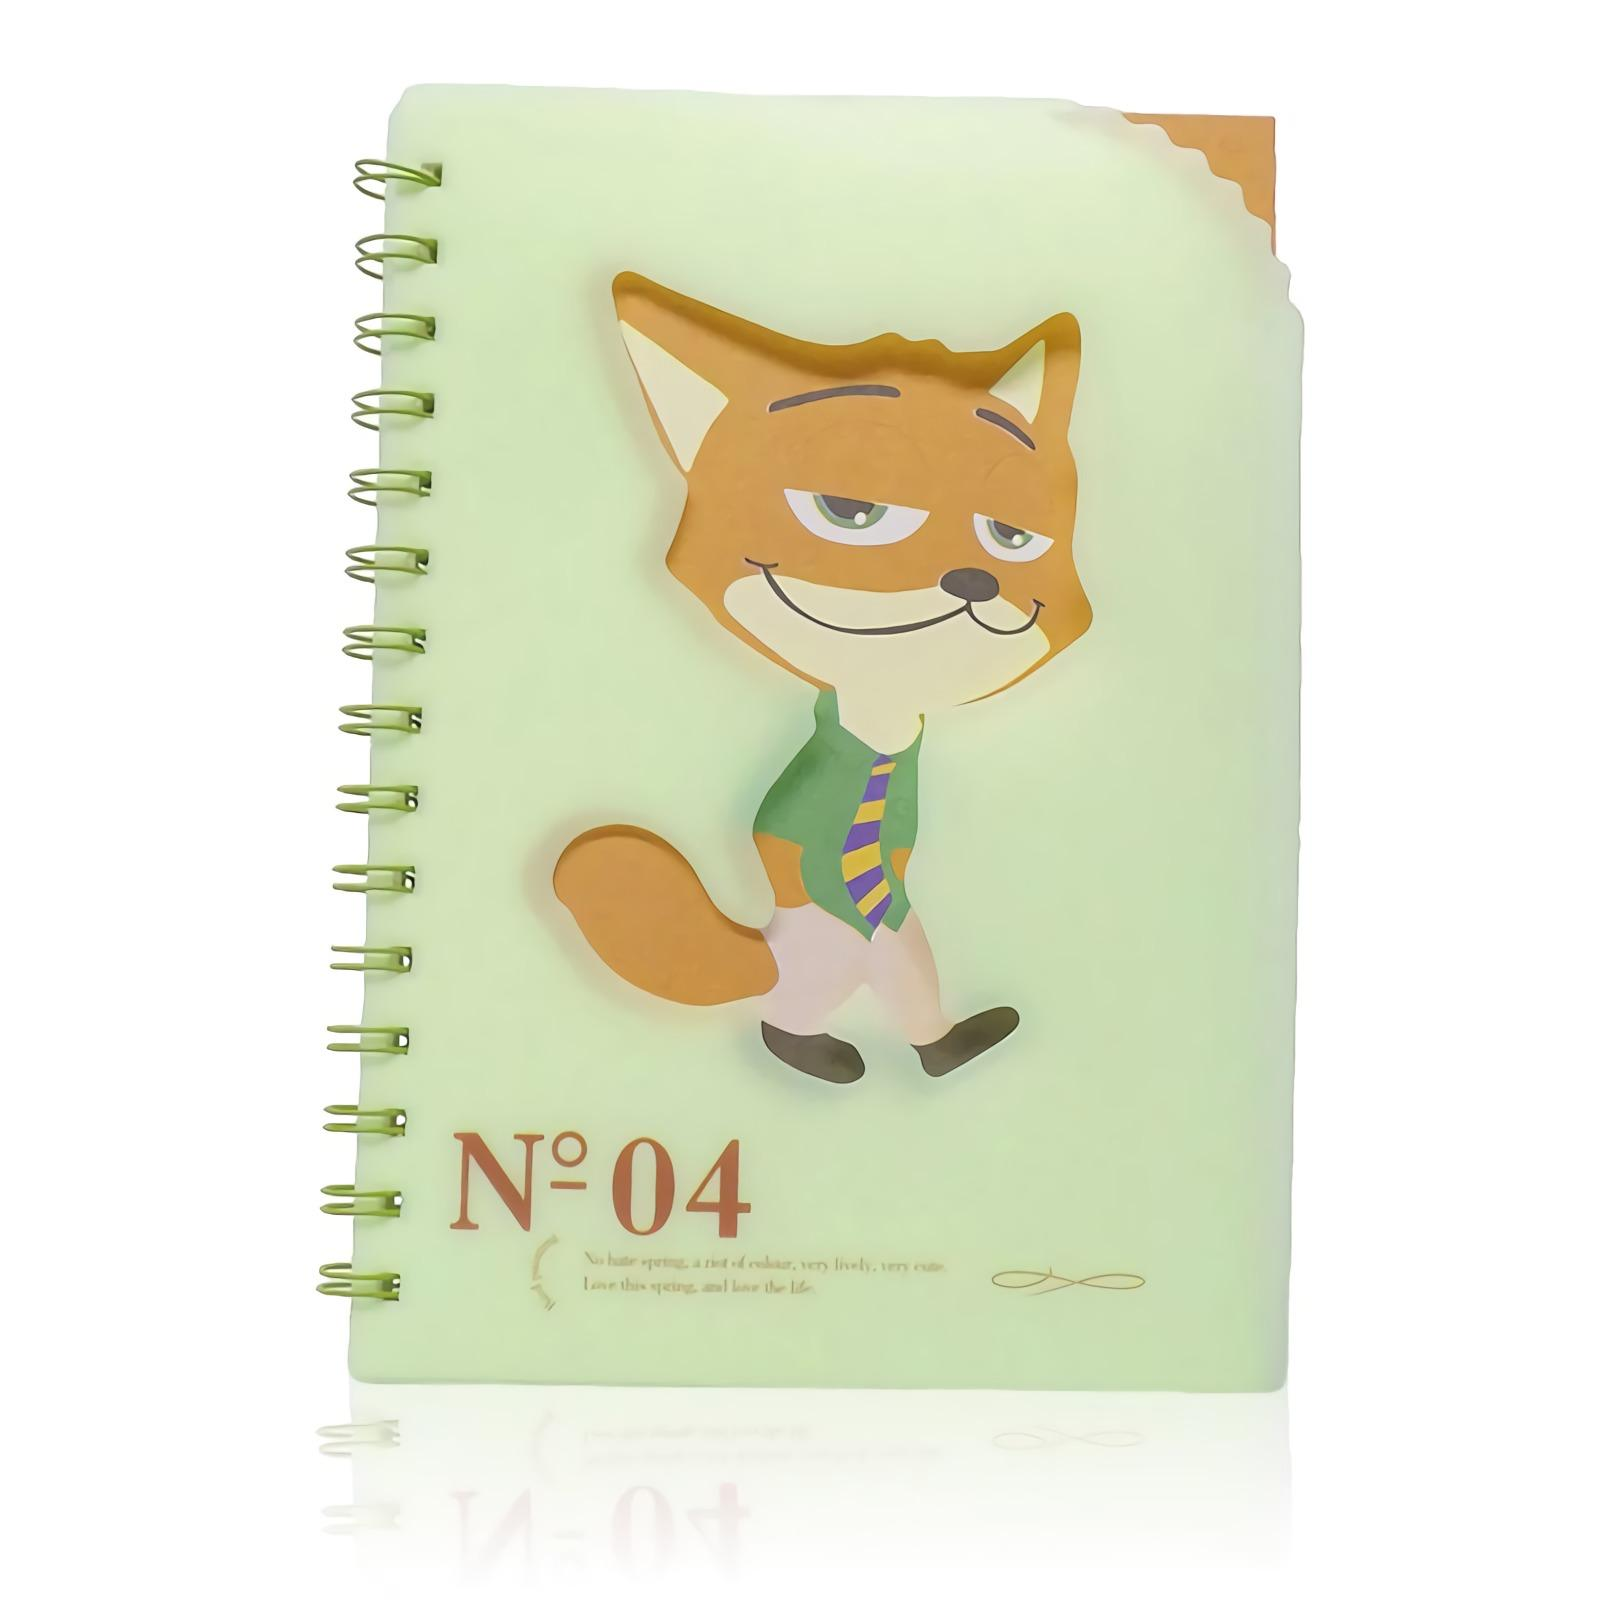 OHOME Buku Tulis [77 Lembar] Note Book Ukuran A5 Notebook Catatan MS-28825-40-NO-04 Hijau